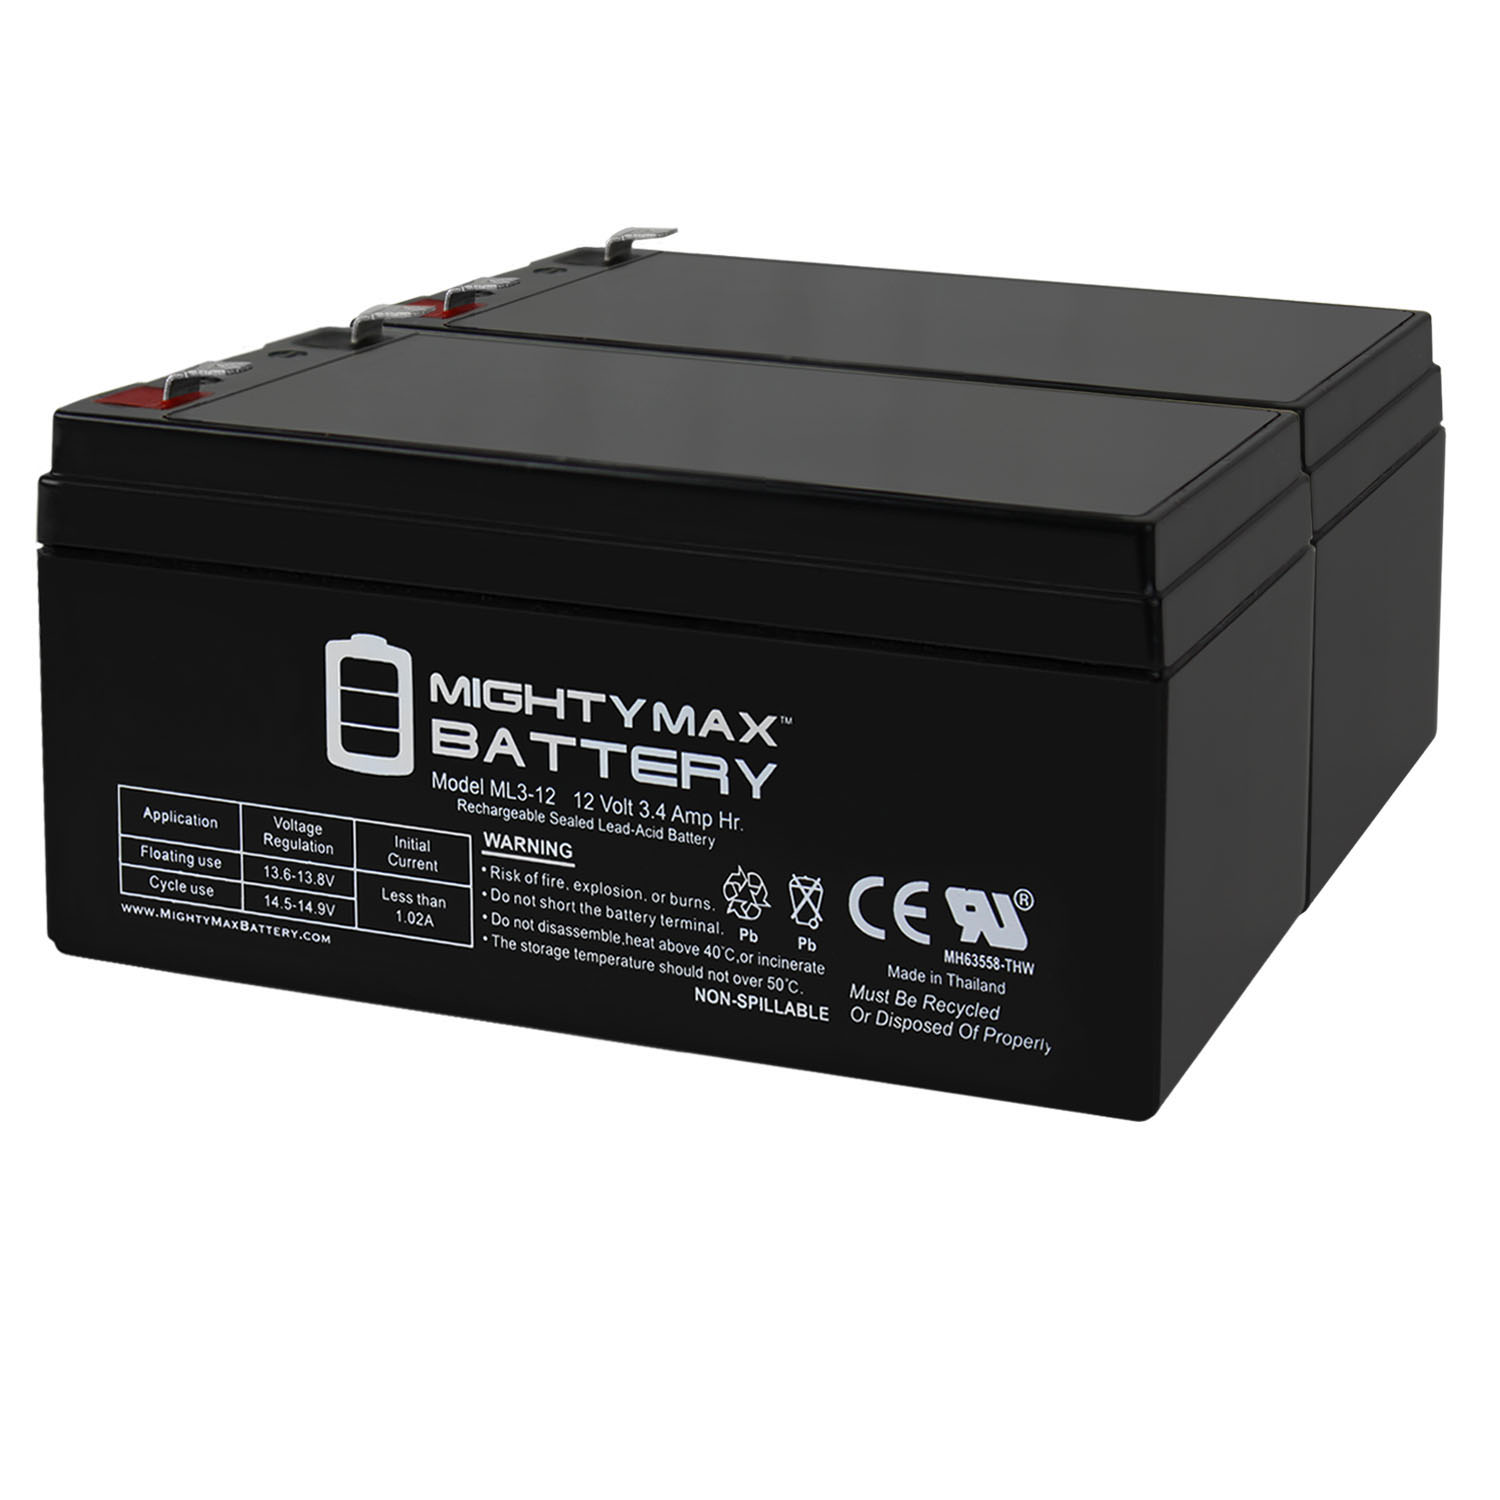 Mighty Max Battery ML3-12 Replacement For Toro Lawn mower # 106-8397 BATTERY-12V 3.4Ah - 2 Pack at Sears.com